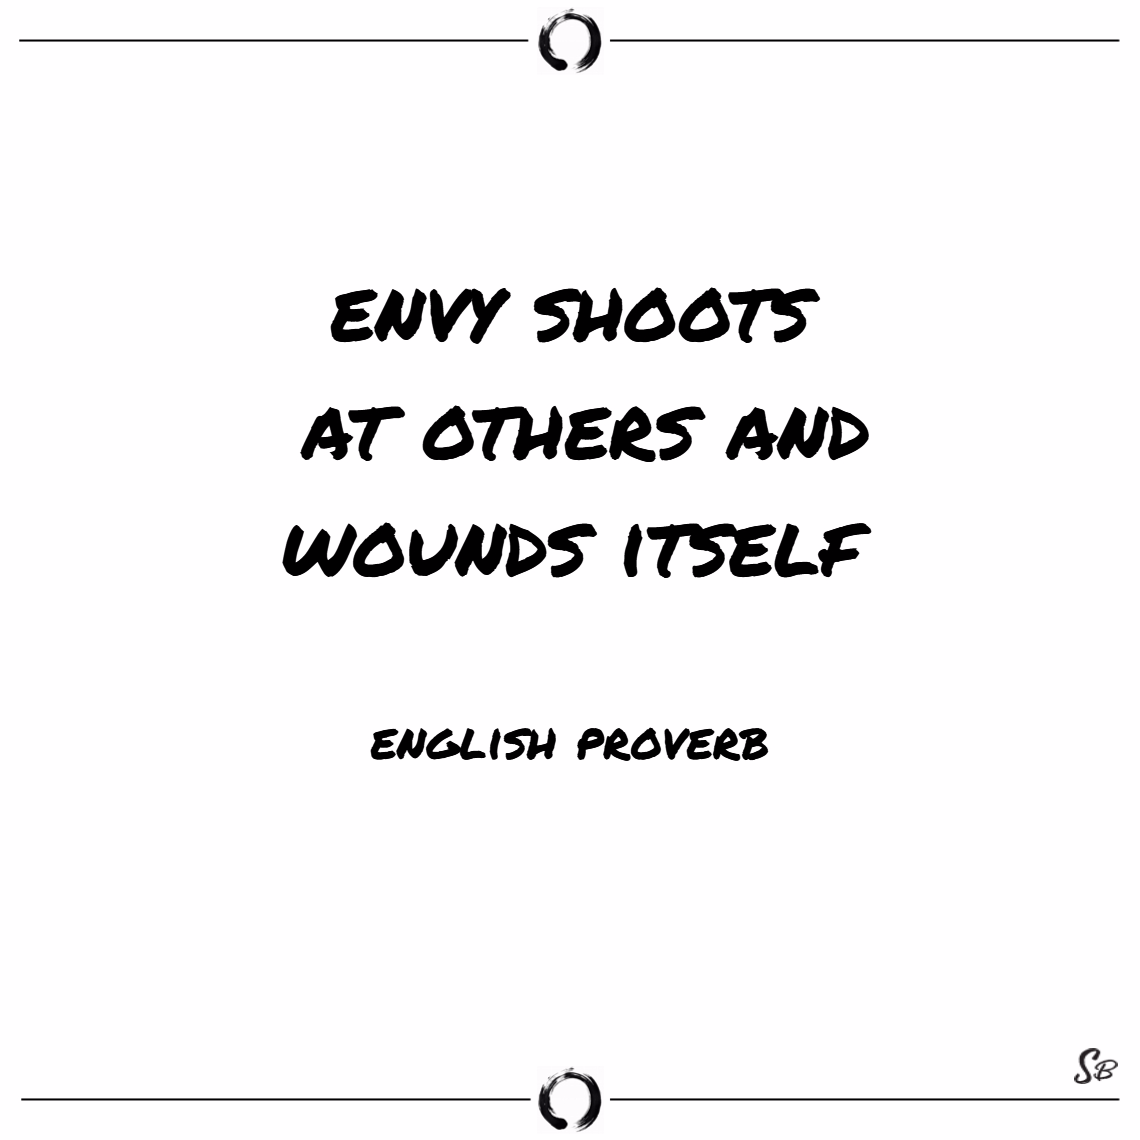 Envy shoots at others and wounds itself. – english proverb